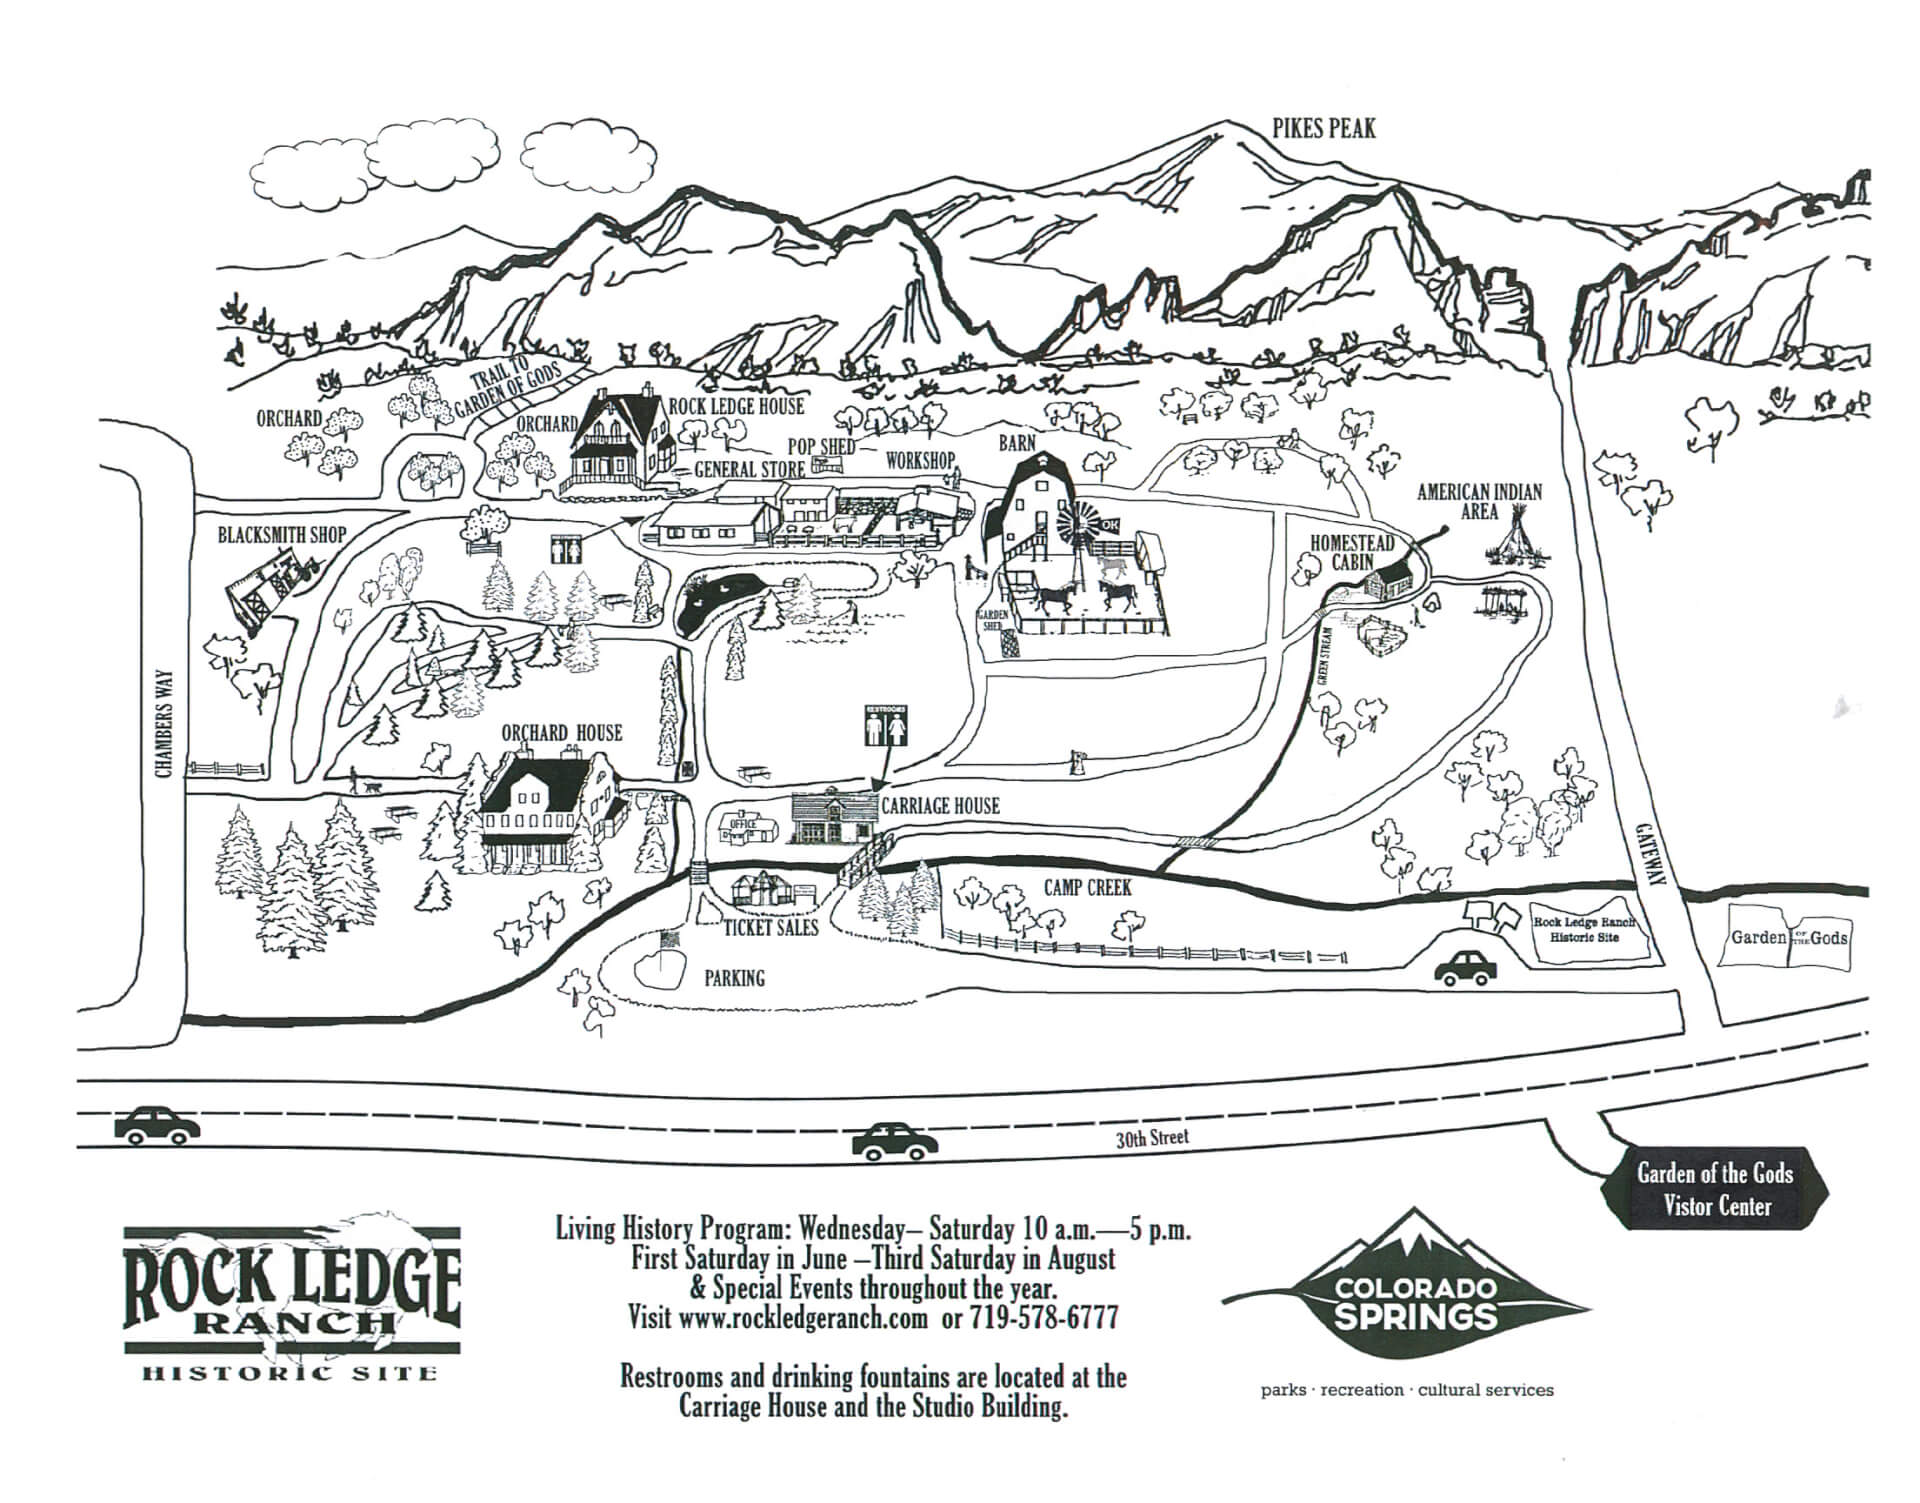 Map of Rock Ledge Ranch